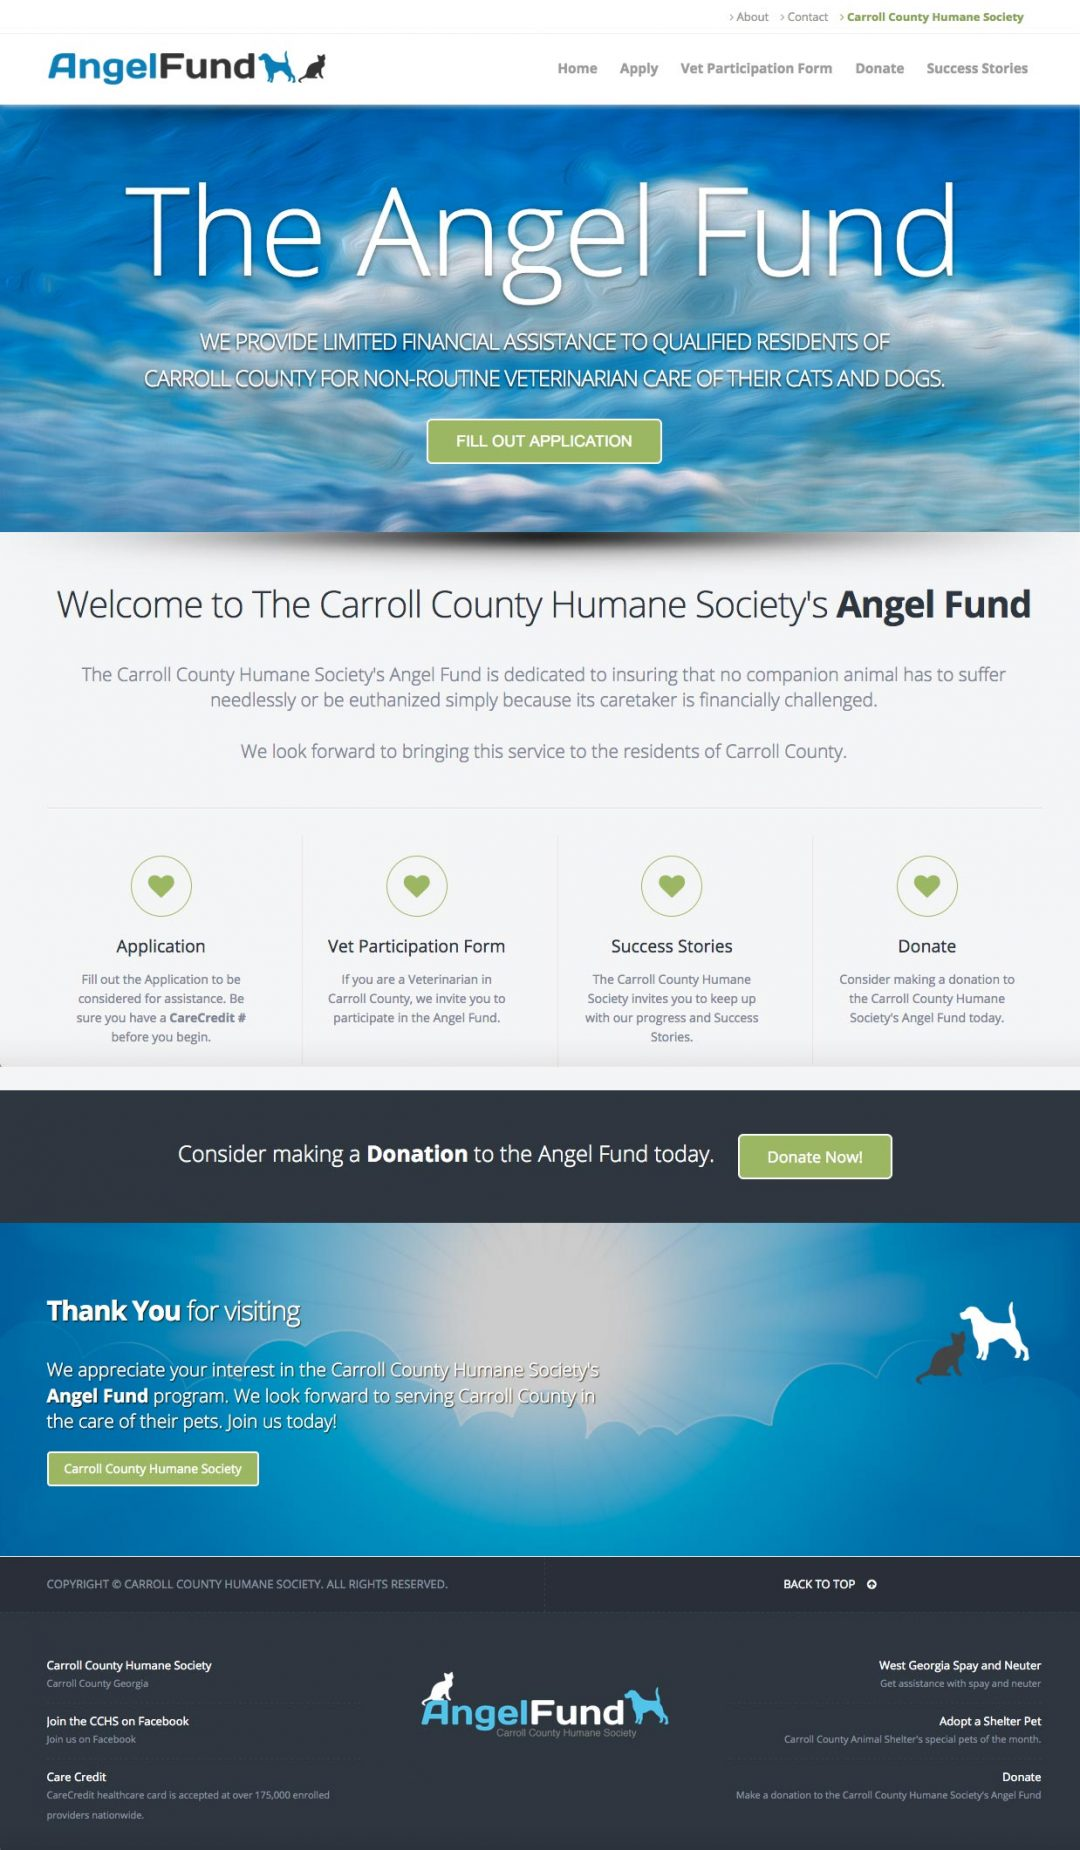 The Angel Fund